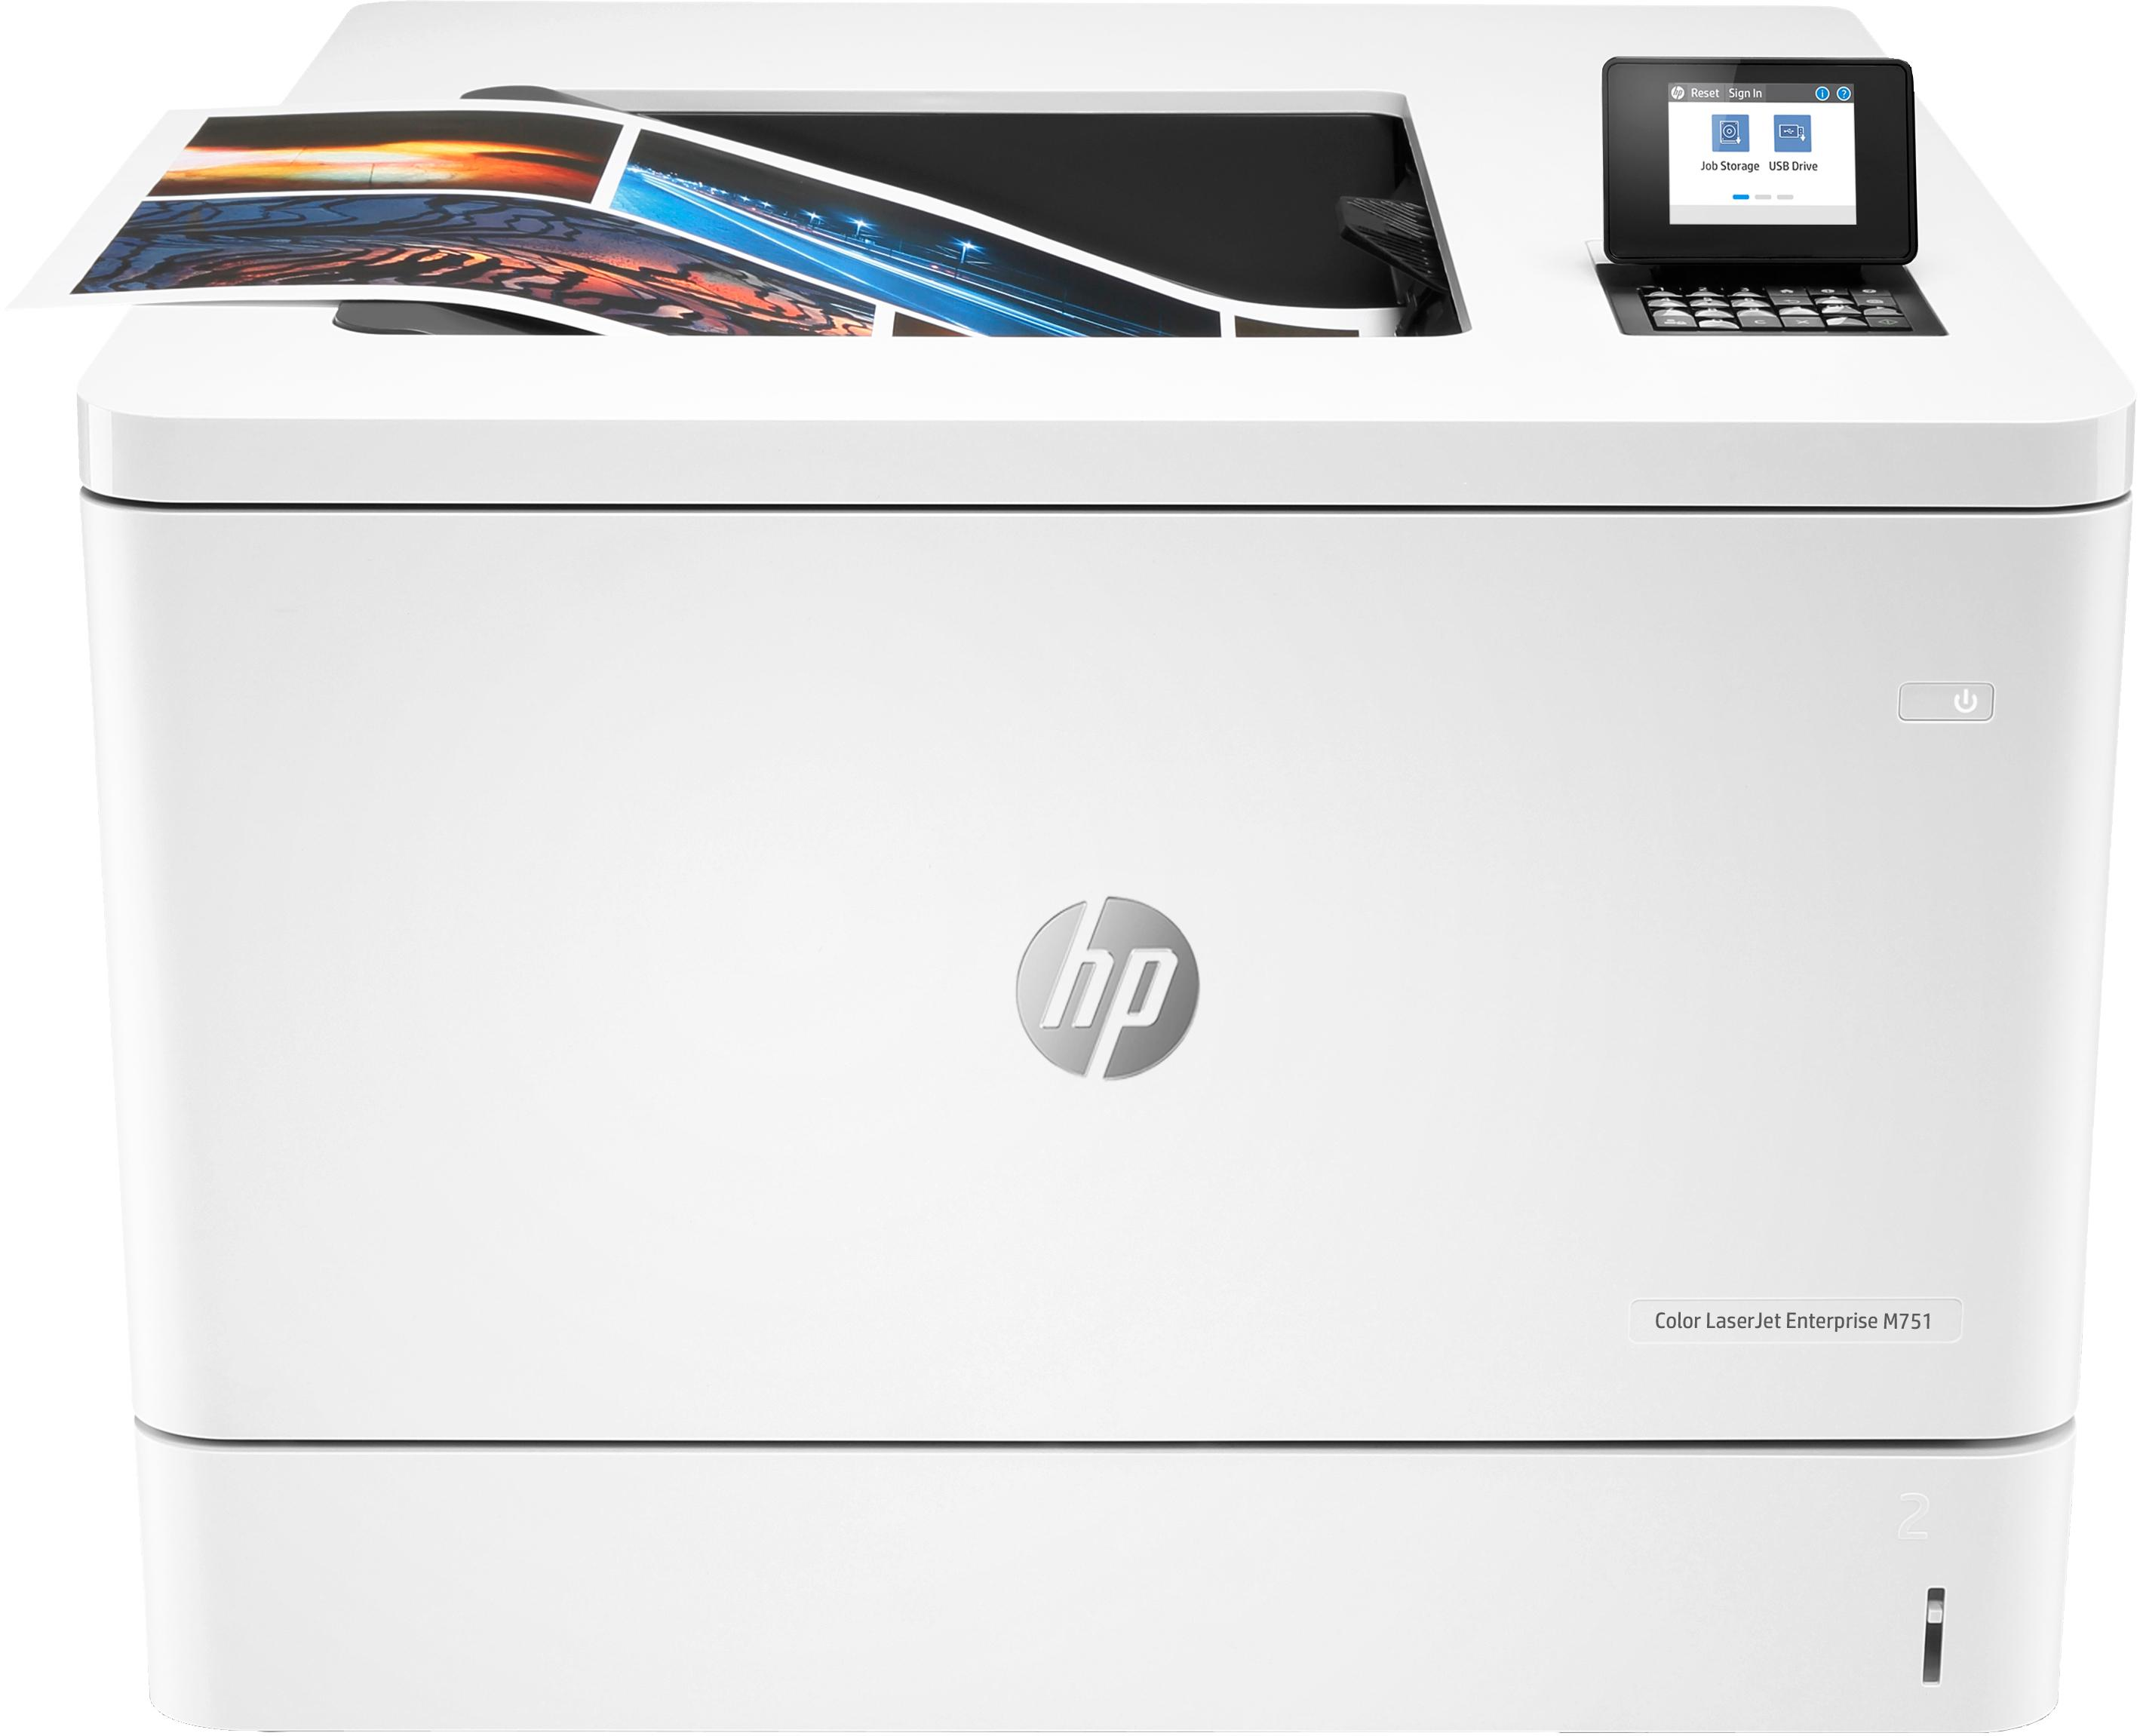 HP Color Laserjet Enterprise M751 (Color Laserjet Enterprise)